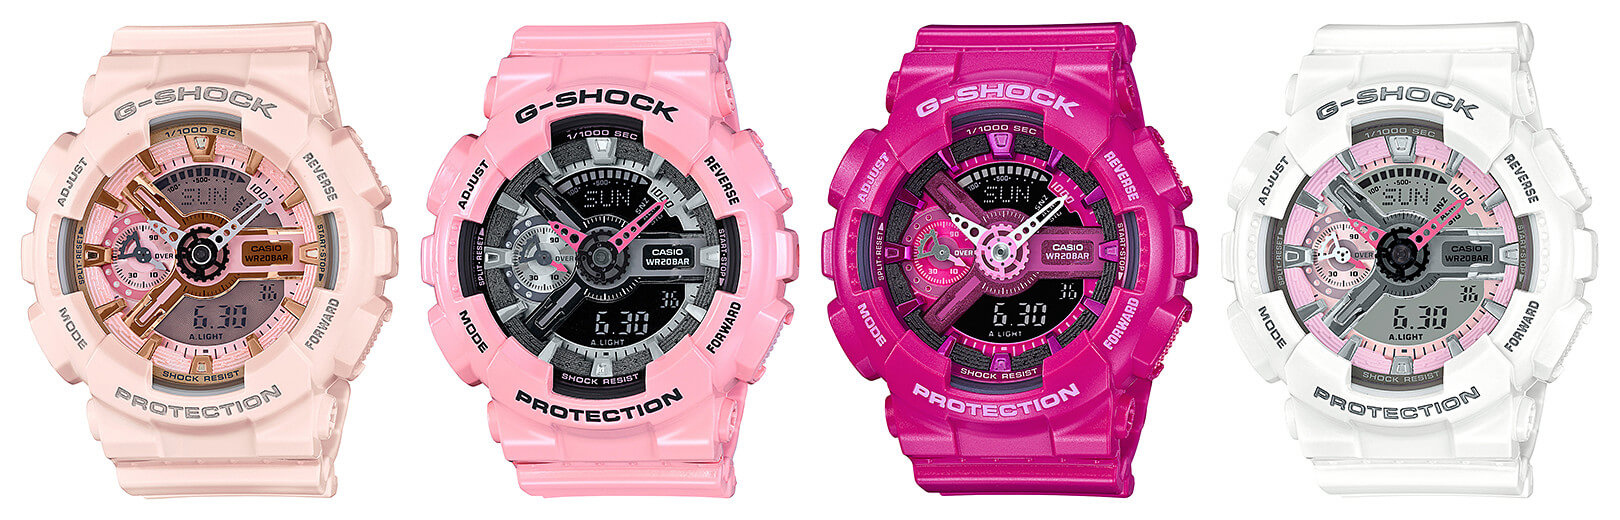 G Shock Gma S110mp Pink S Series Watches G Central G